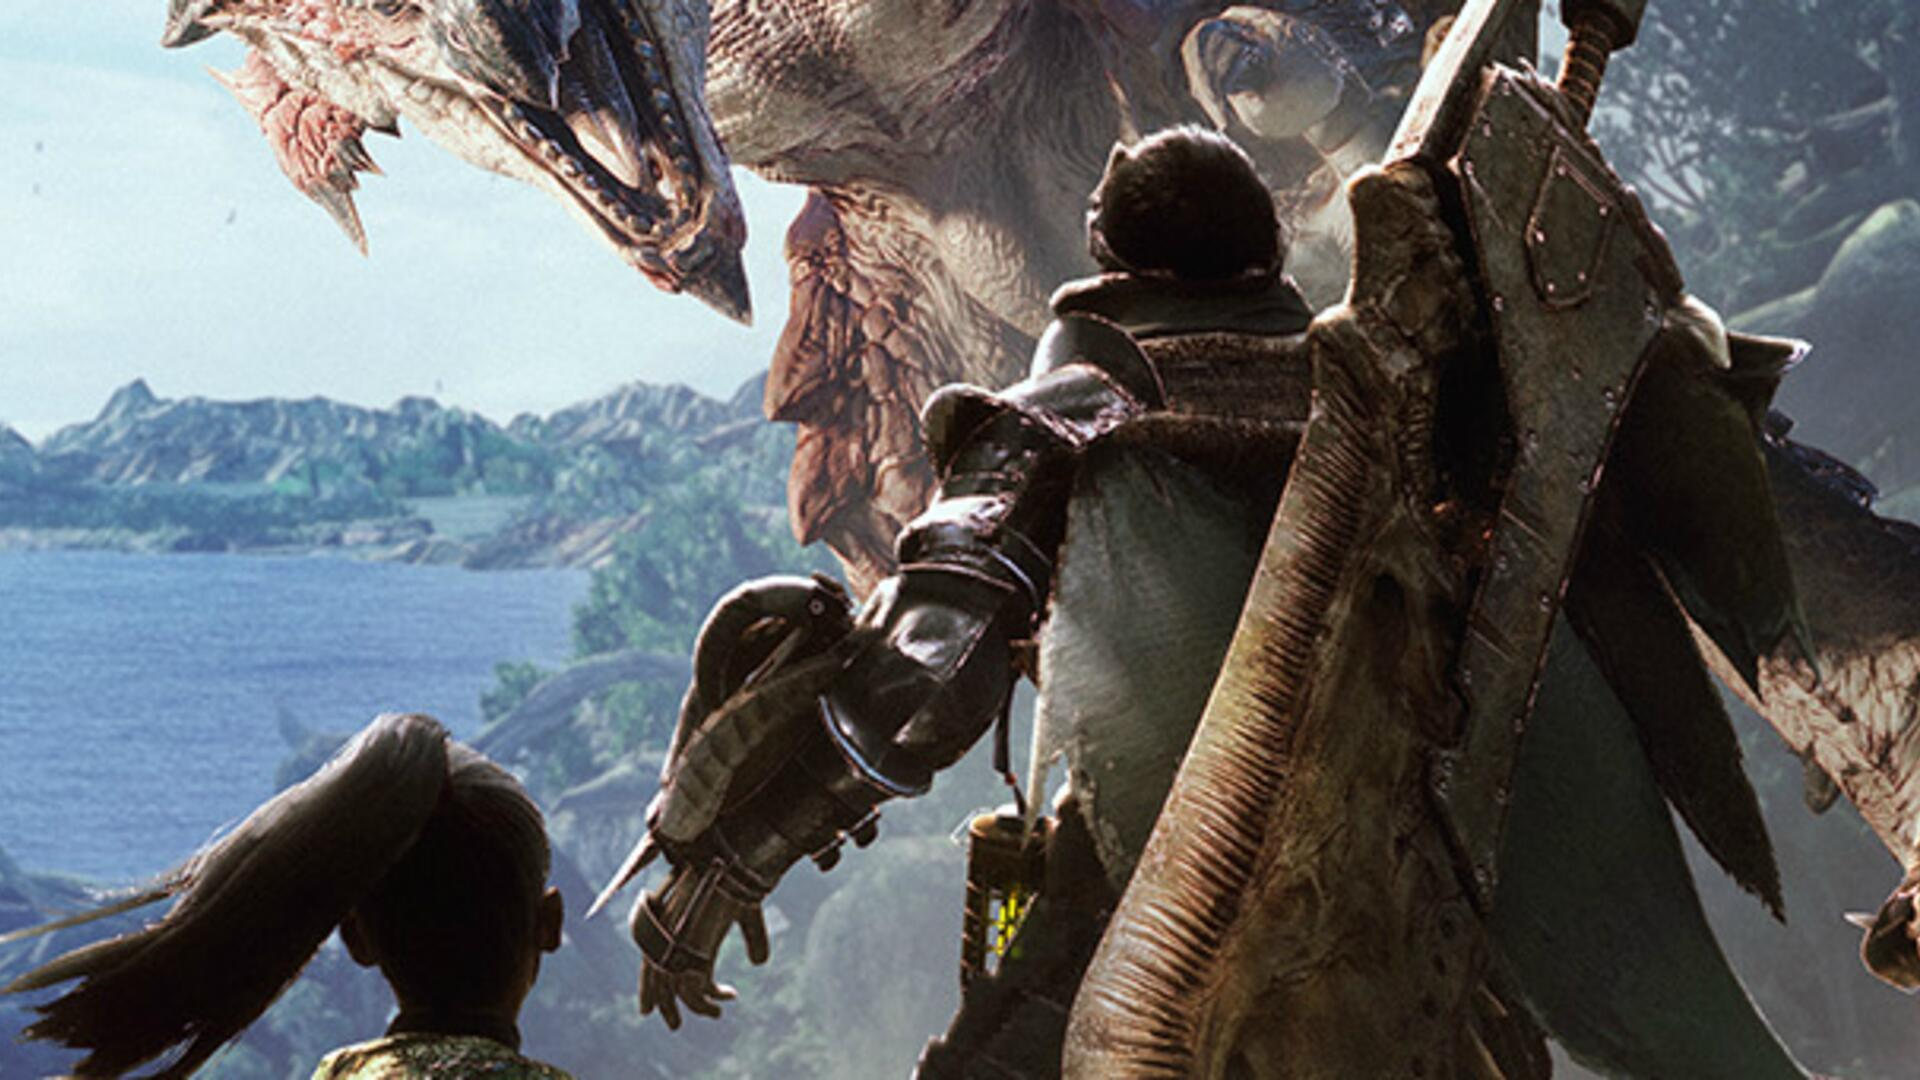 Monster Hunter: World PC Patch Fixes Crashing Issues, Will be